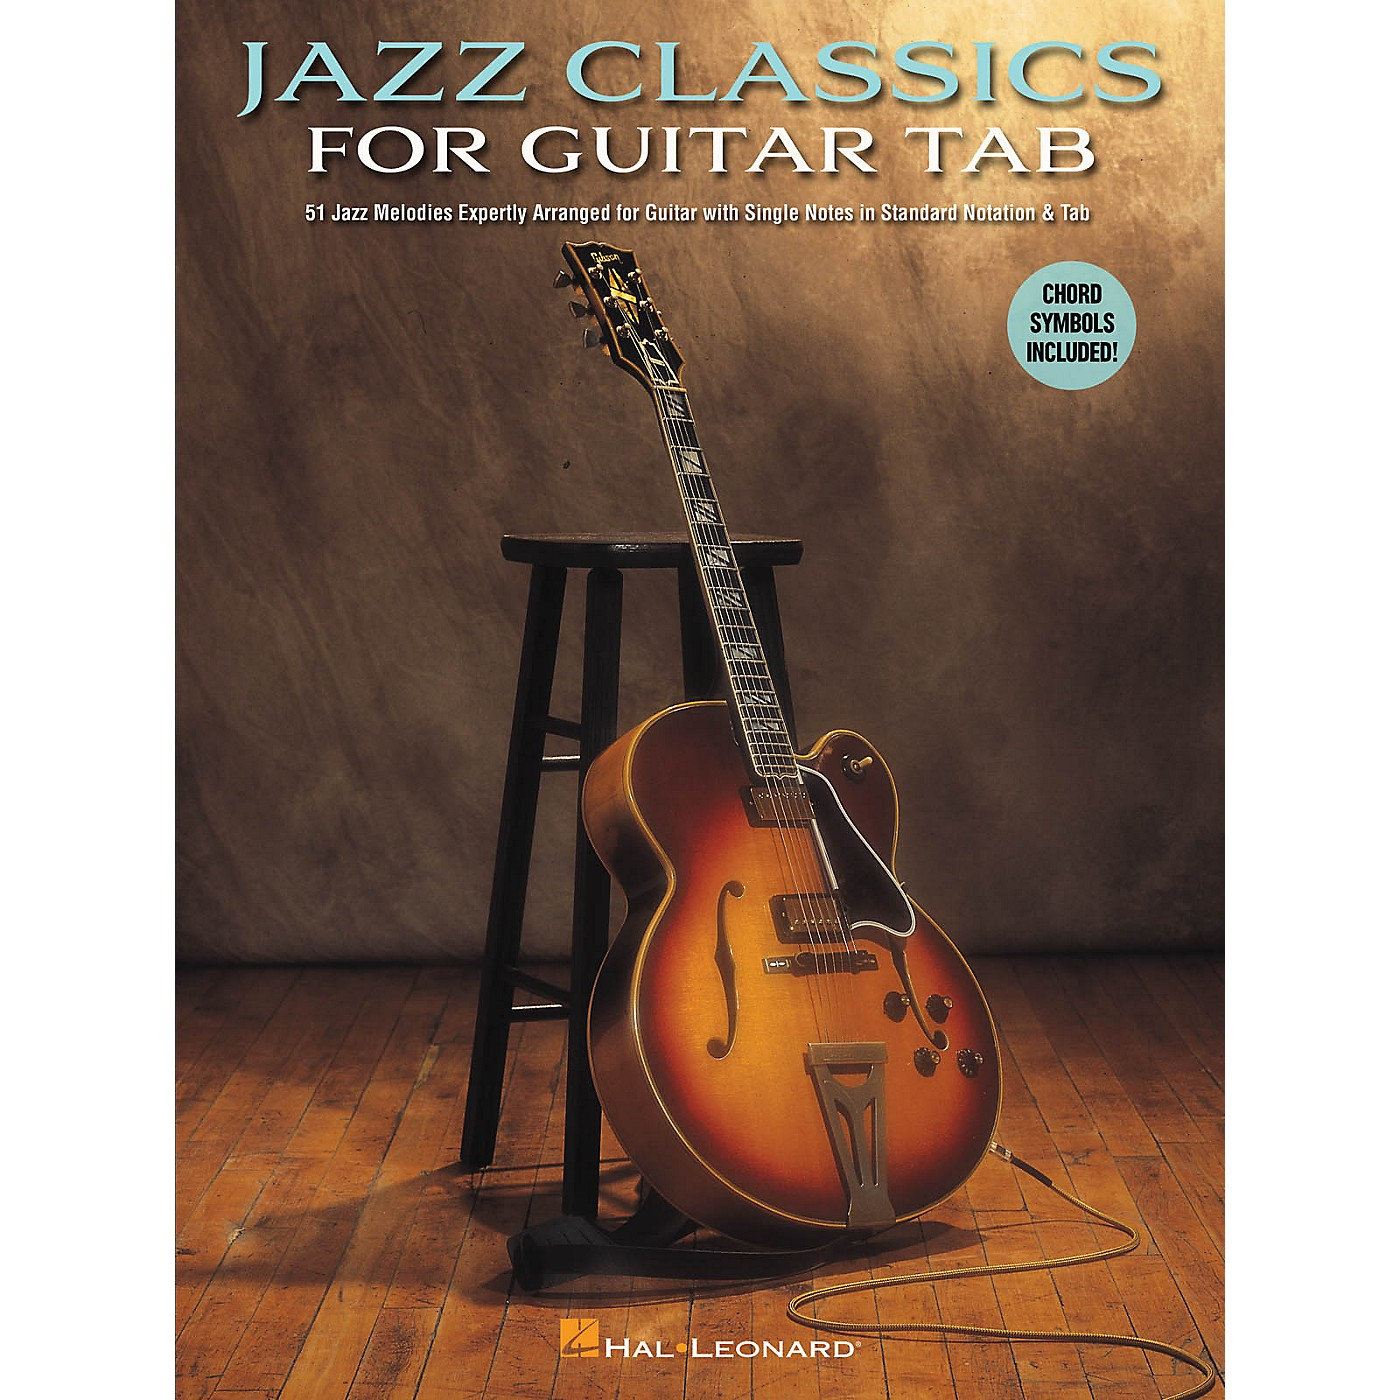 Hal Leonard Jazz Classics for Guitar Tab Guitar Collection Series Softcover thumbnail